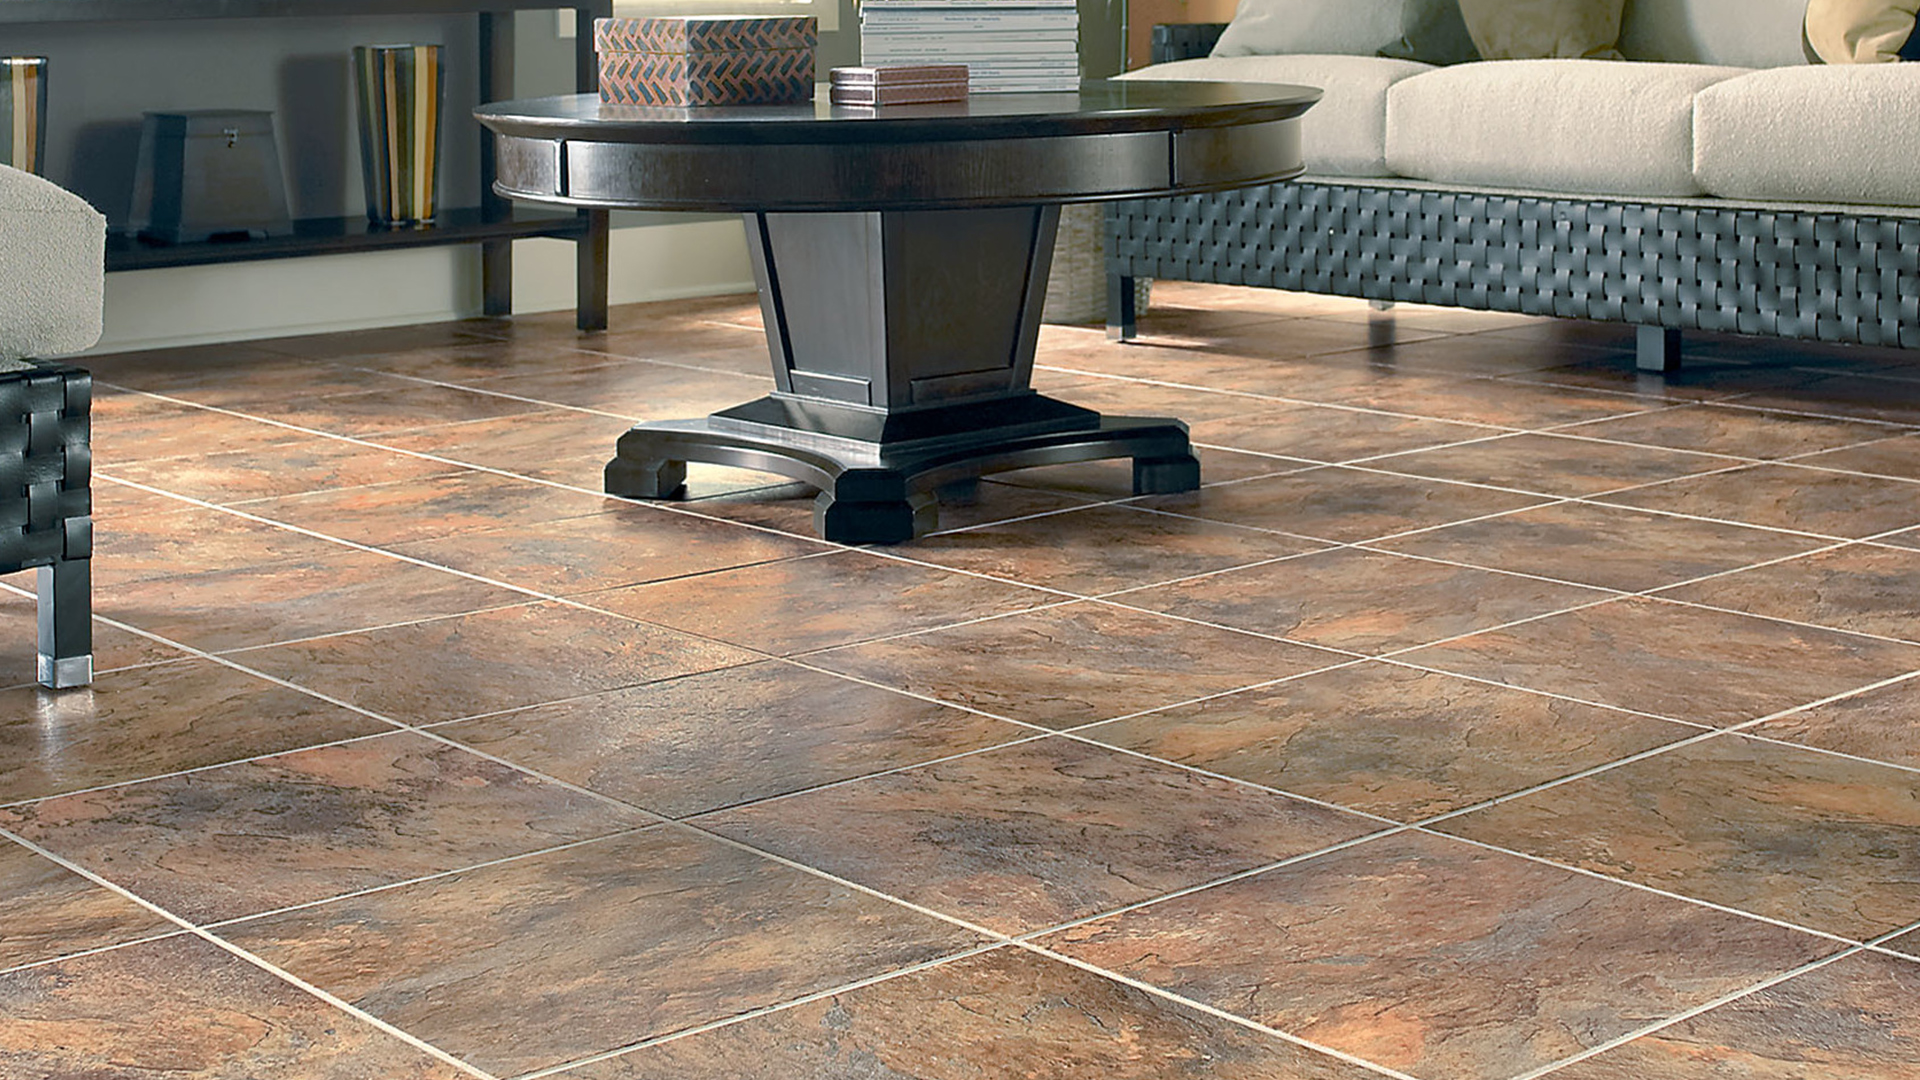 American-Carpet-Wholesalers-Flooring-vinyl-plank-tile